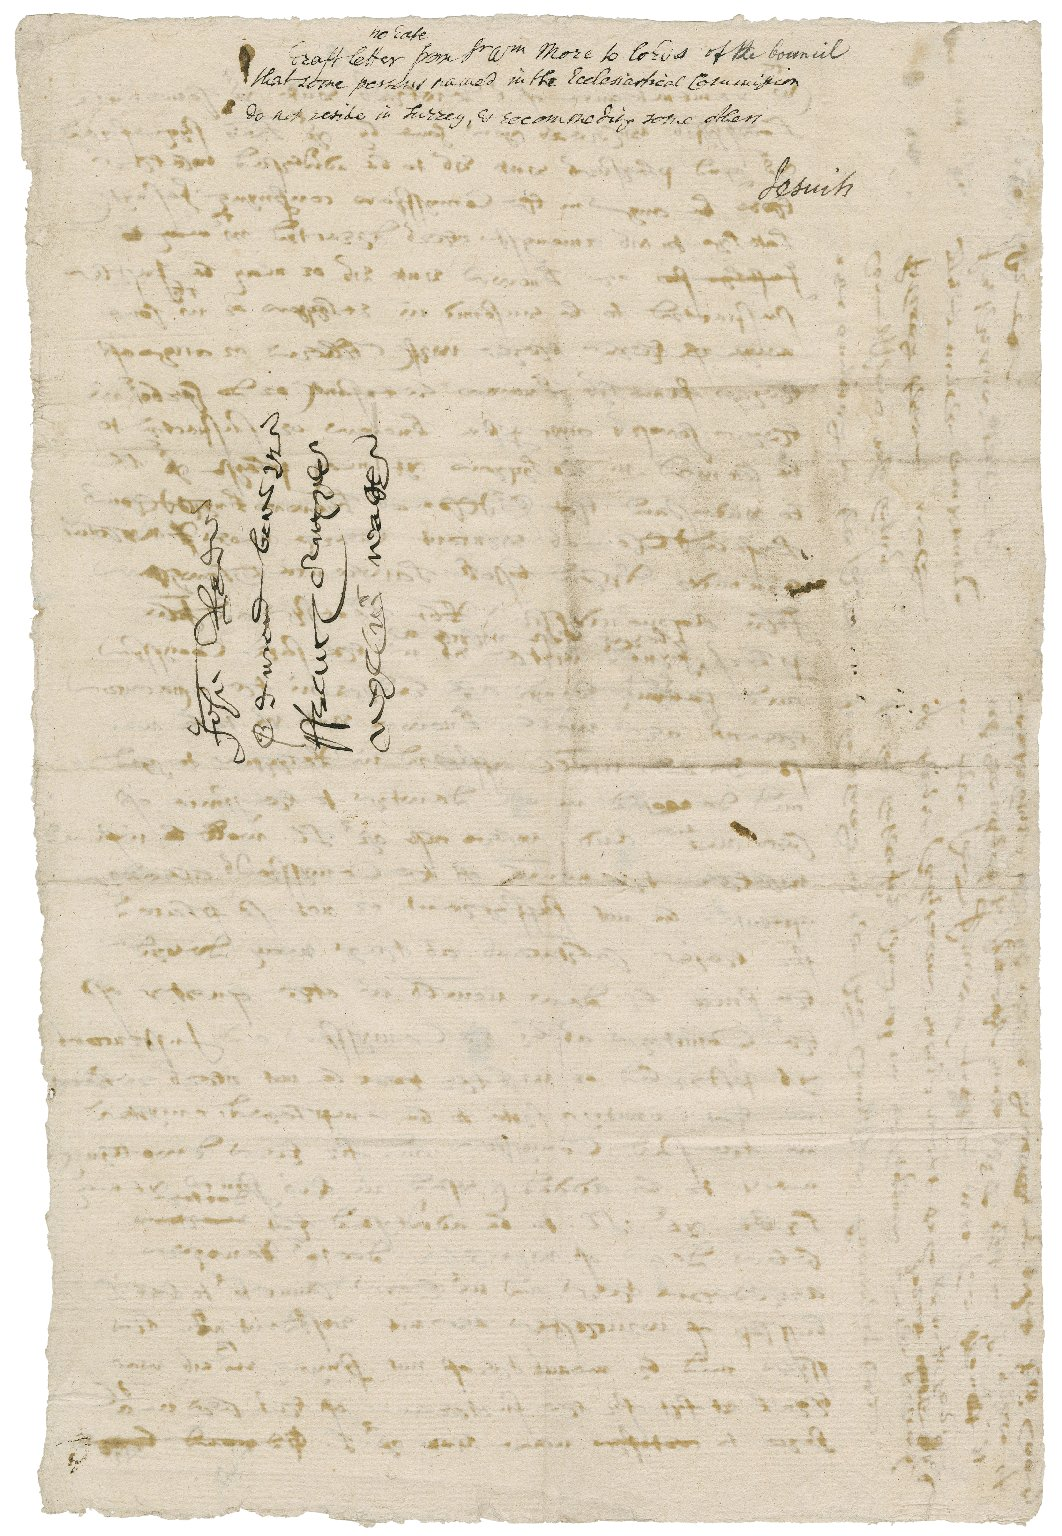 More, Sir William. Autographed letter. To the Privy Council.